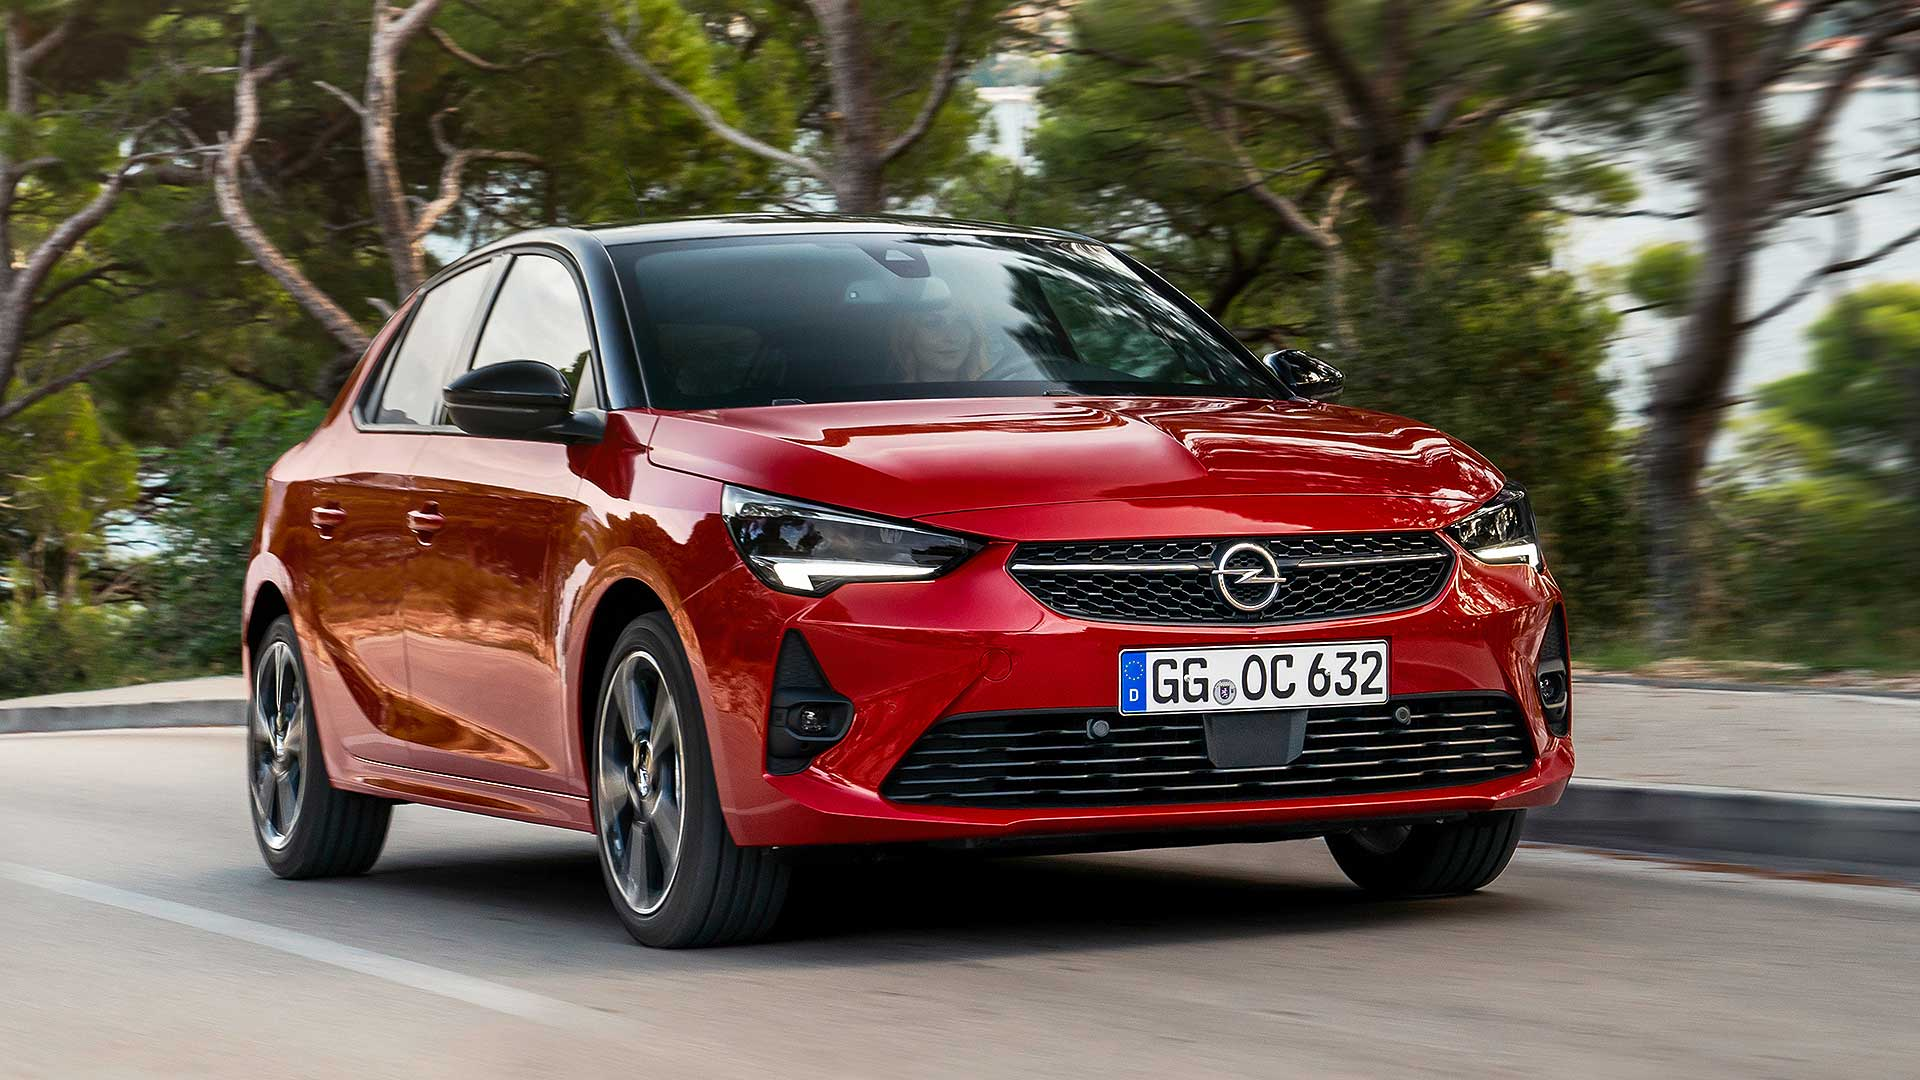 2020 vauxhall corsa review testing the impressive new